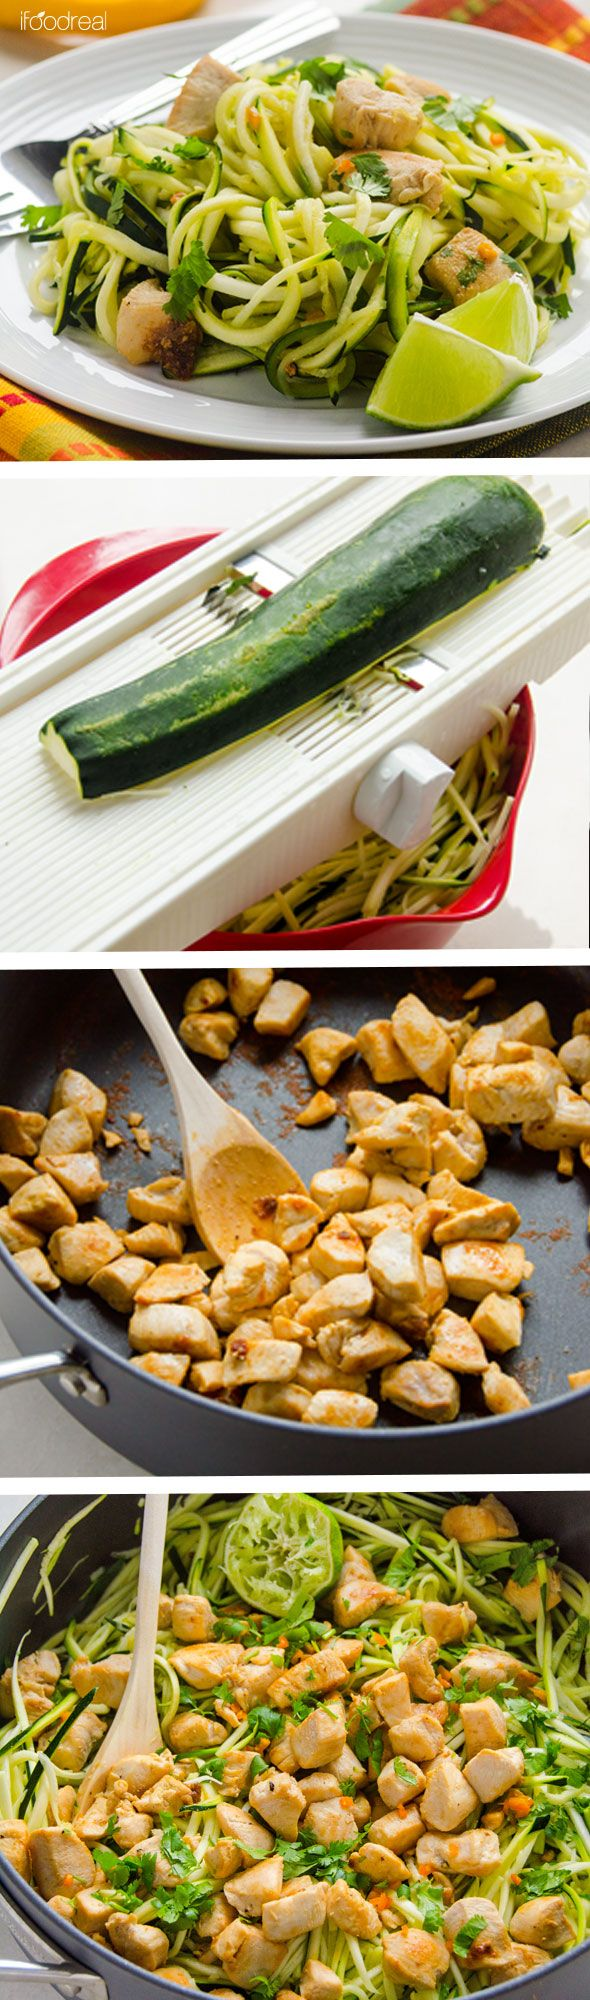 Zucchini Noodles with Cilantro Lime Chicken -- Delicious 20 minute healthy dinner